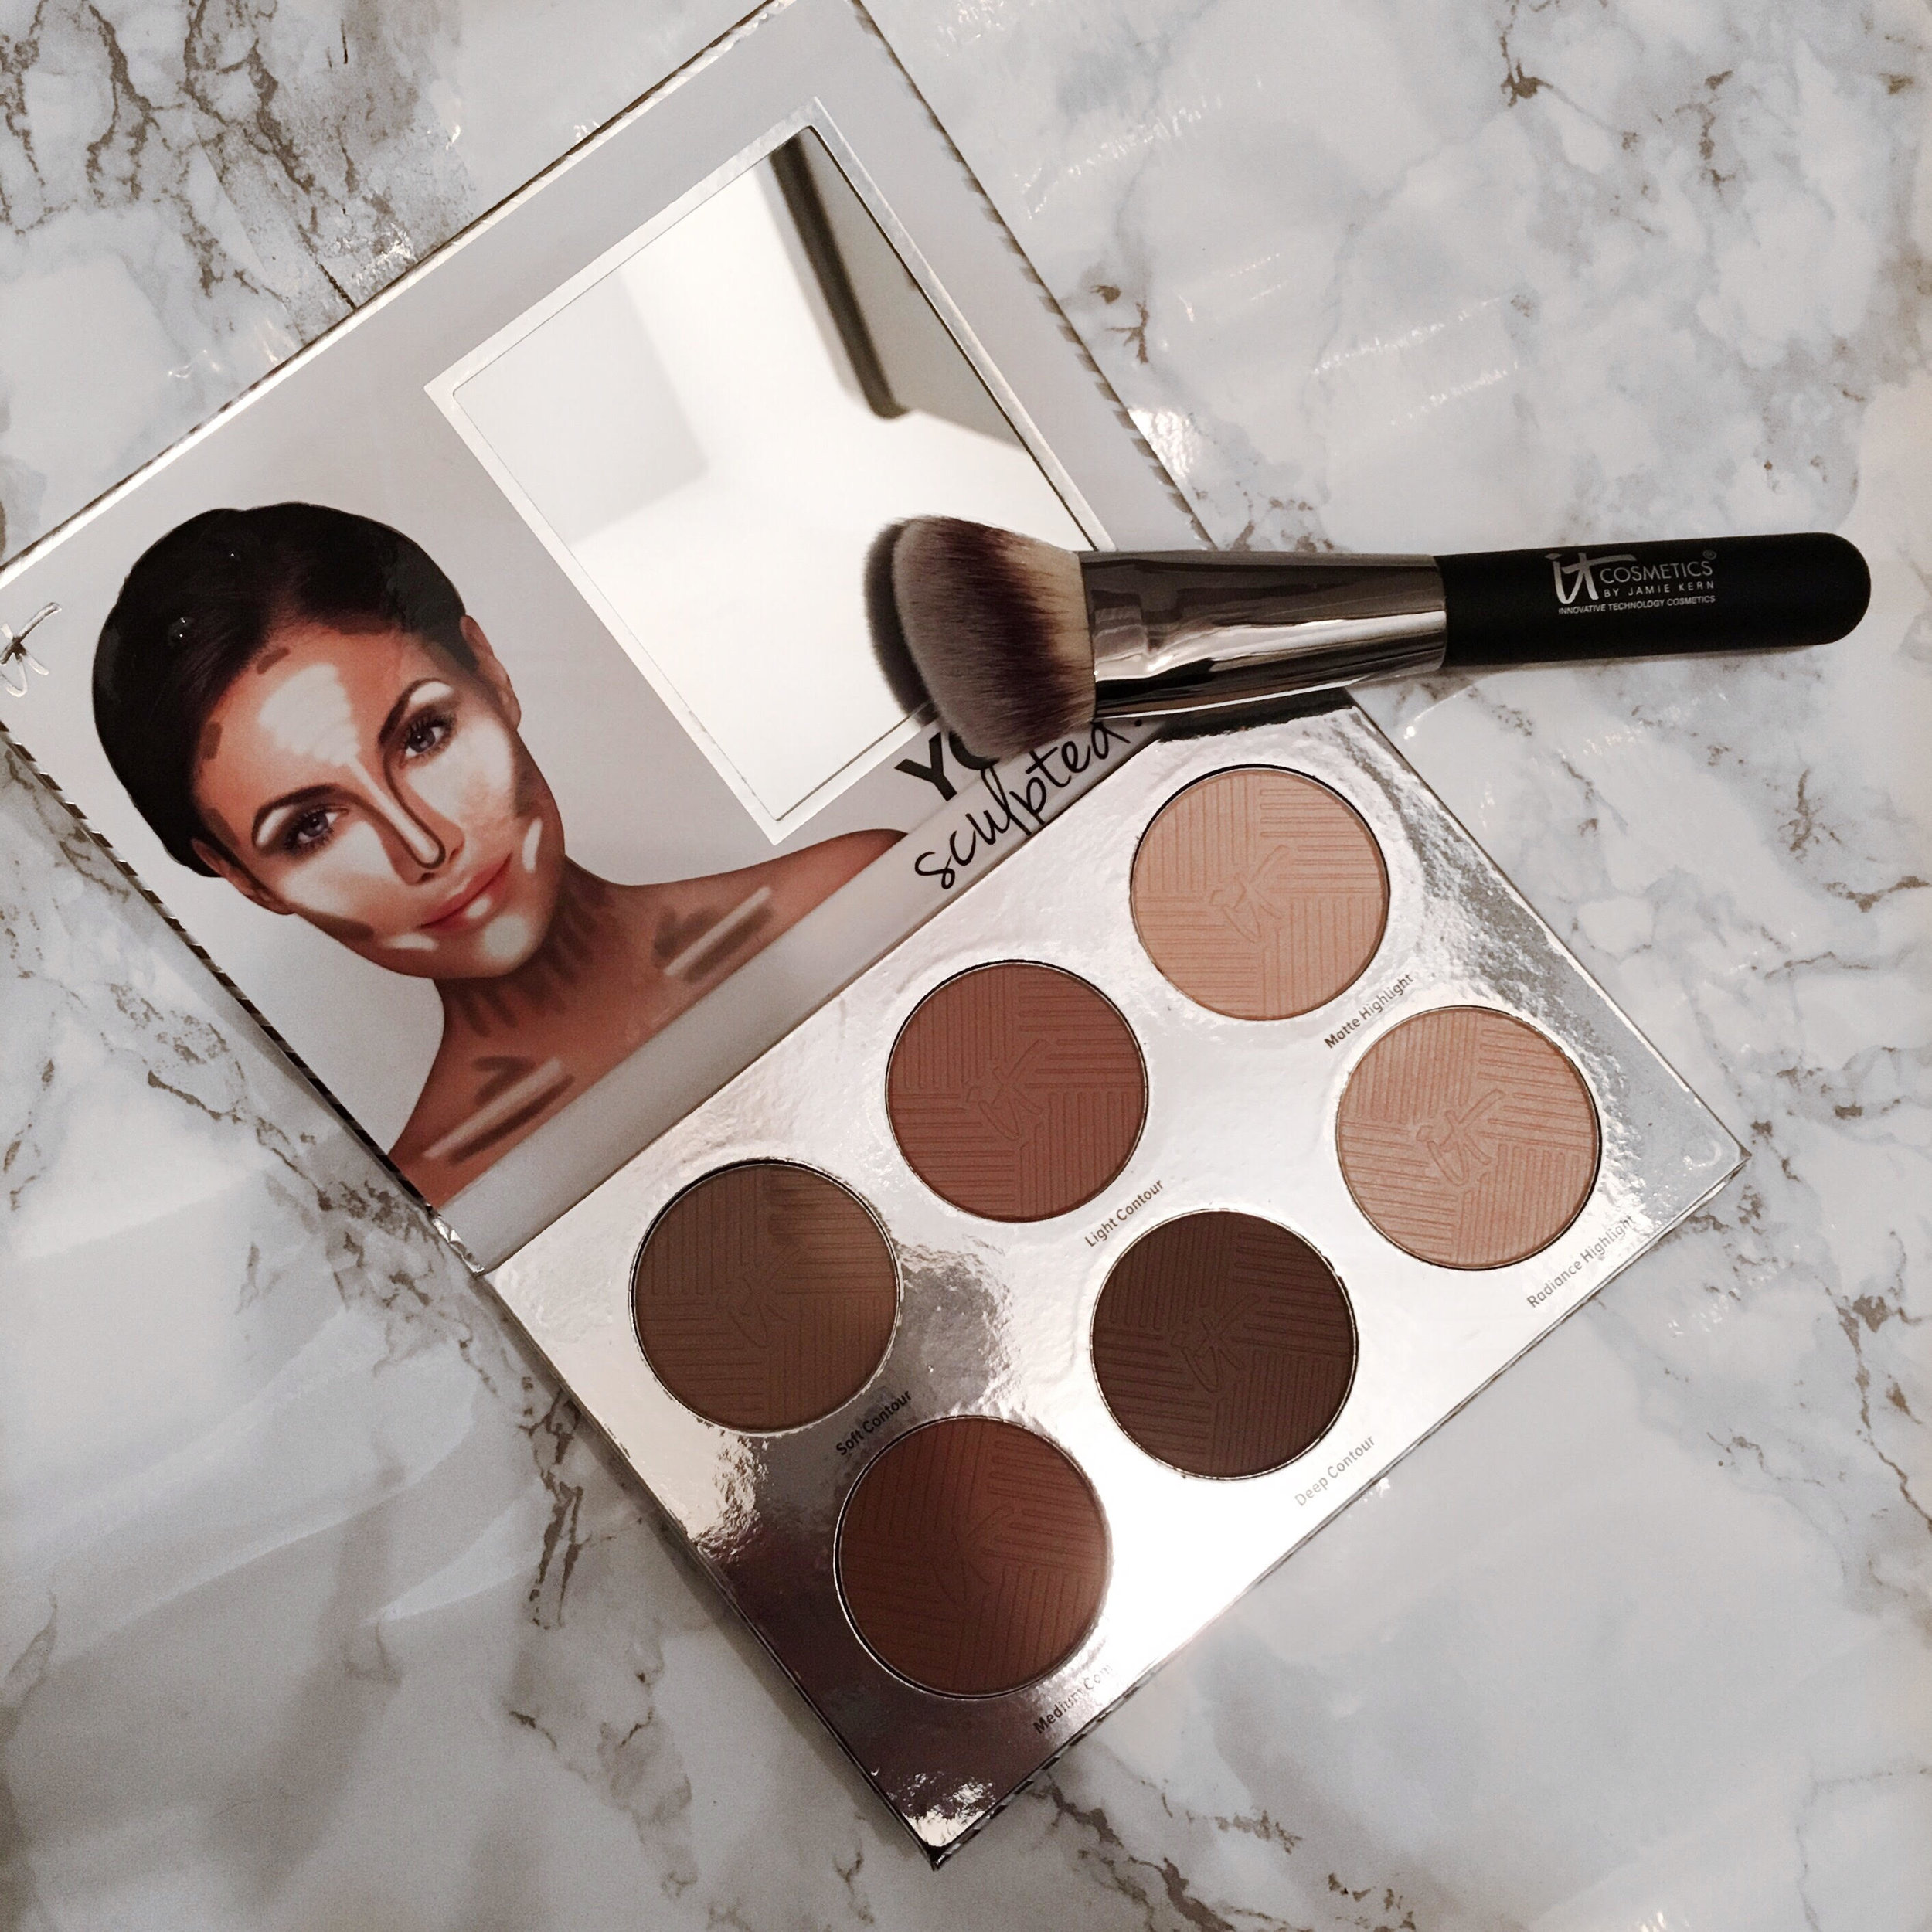 heavenly-luxer-angled-radiance-10-you-sculpted-contouring-palette-review.jpg